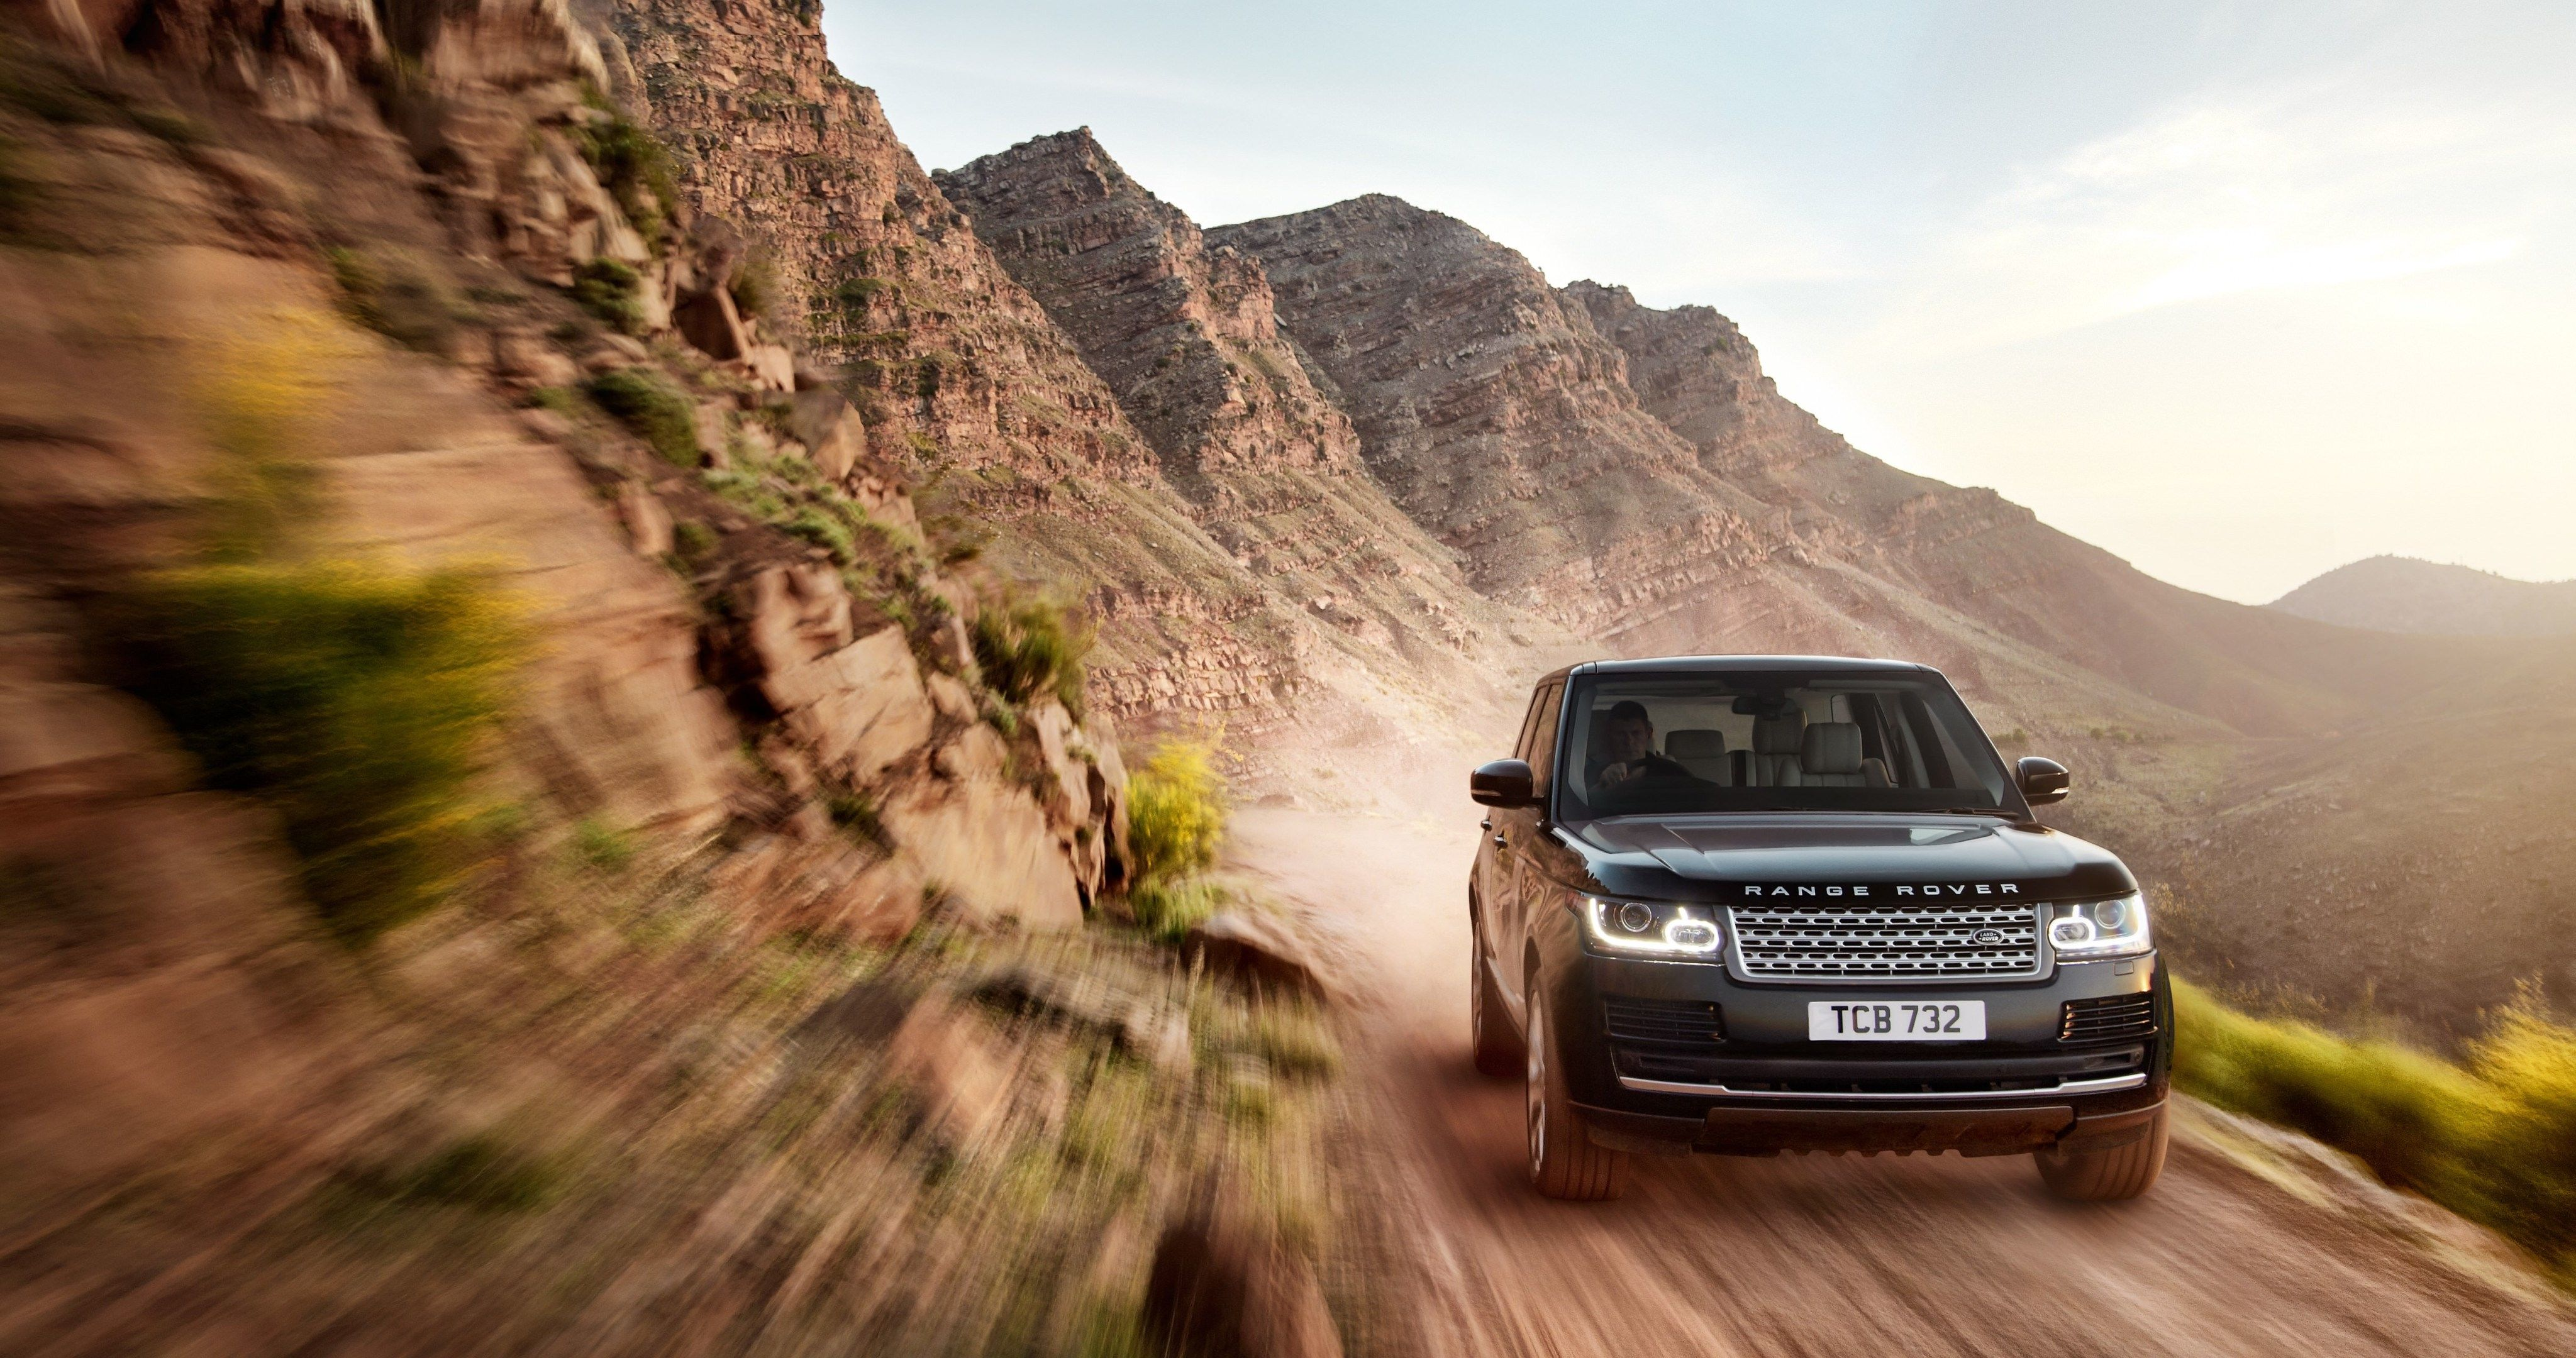 Ultra Hd Wallpaper Of Scout Ranger: Land Rover In A Move Heaven 4k Ultra Hd Wallpaper